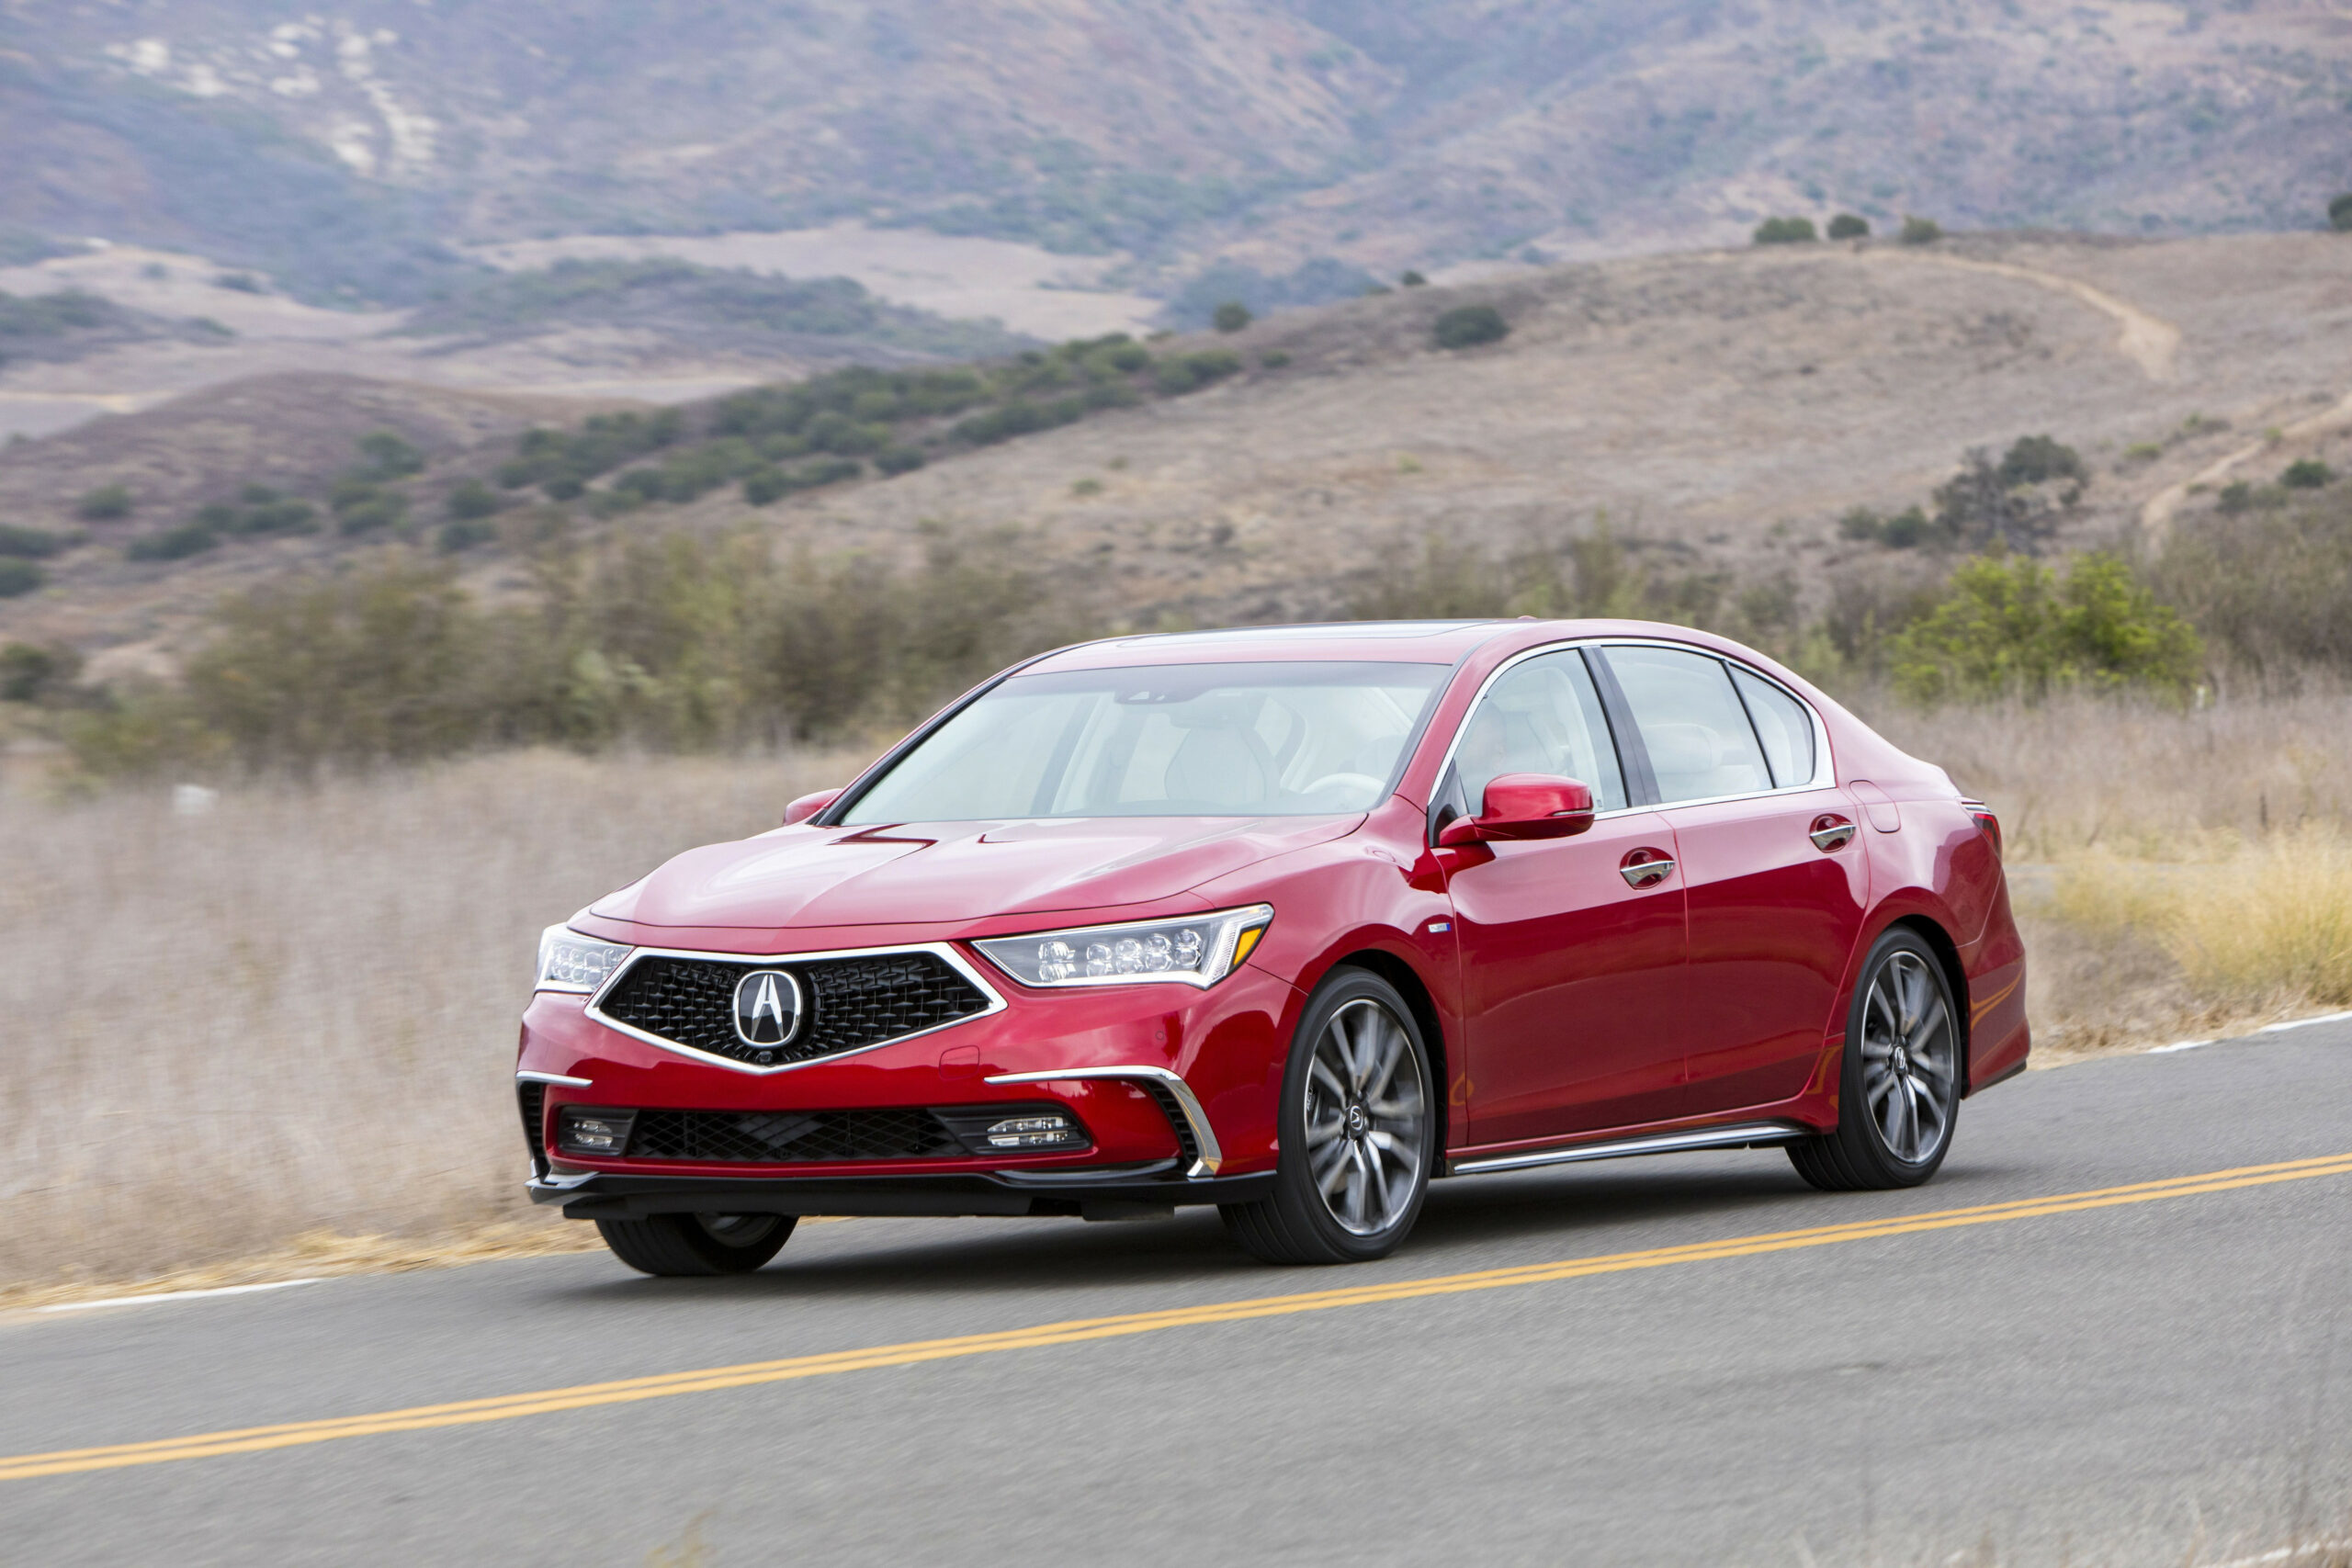 5 Acura RLX Review, Pricing, and Specs | 2020 Acura Rlx Msrp